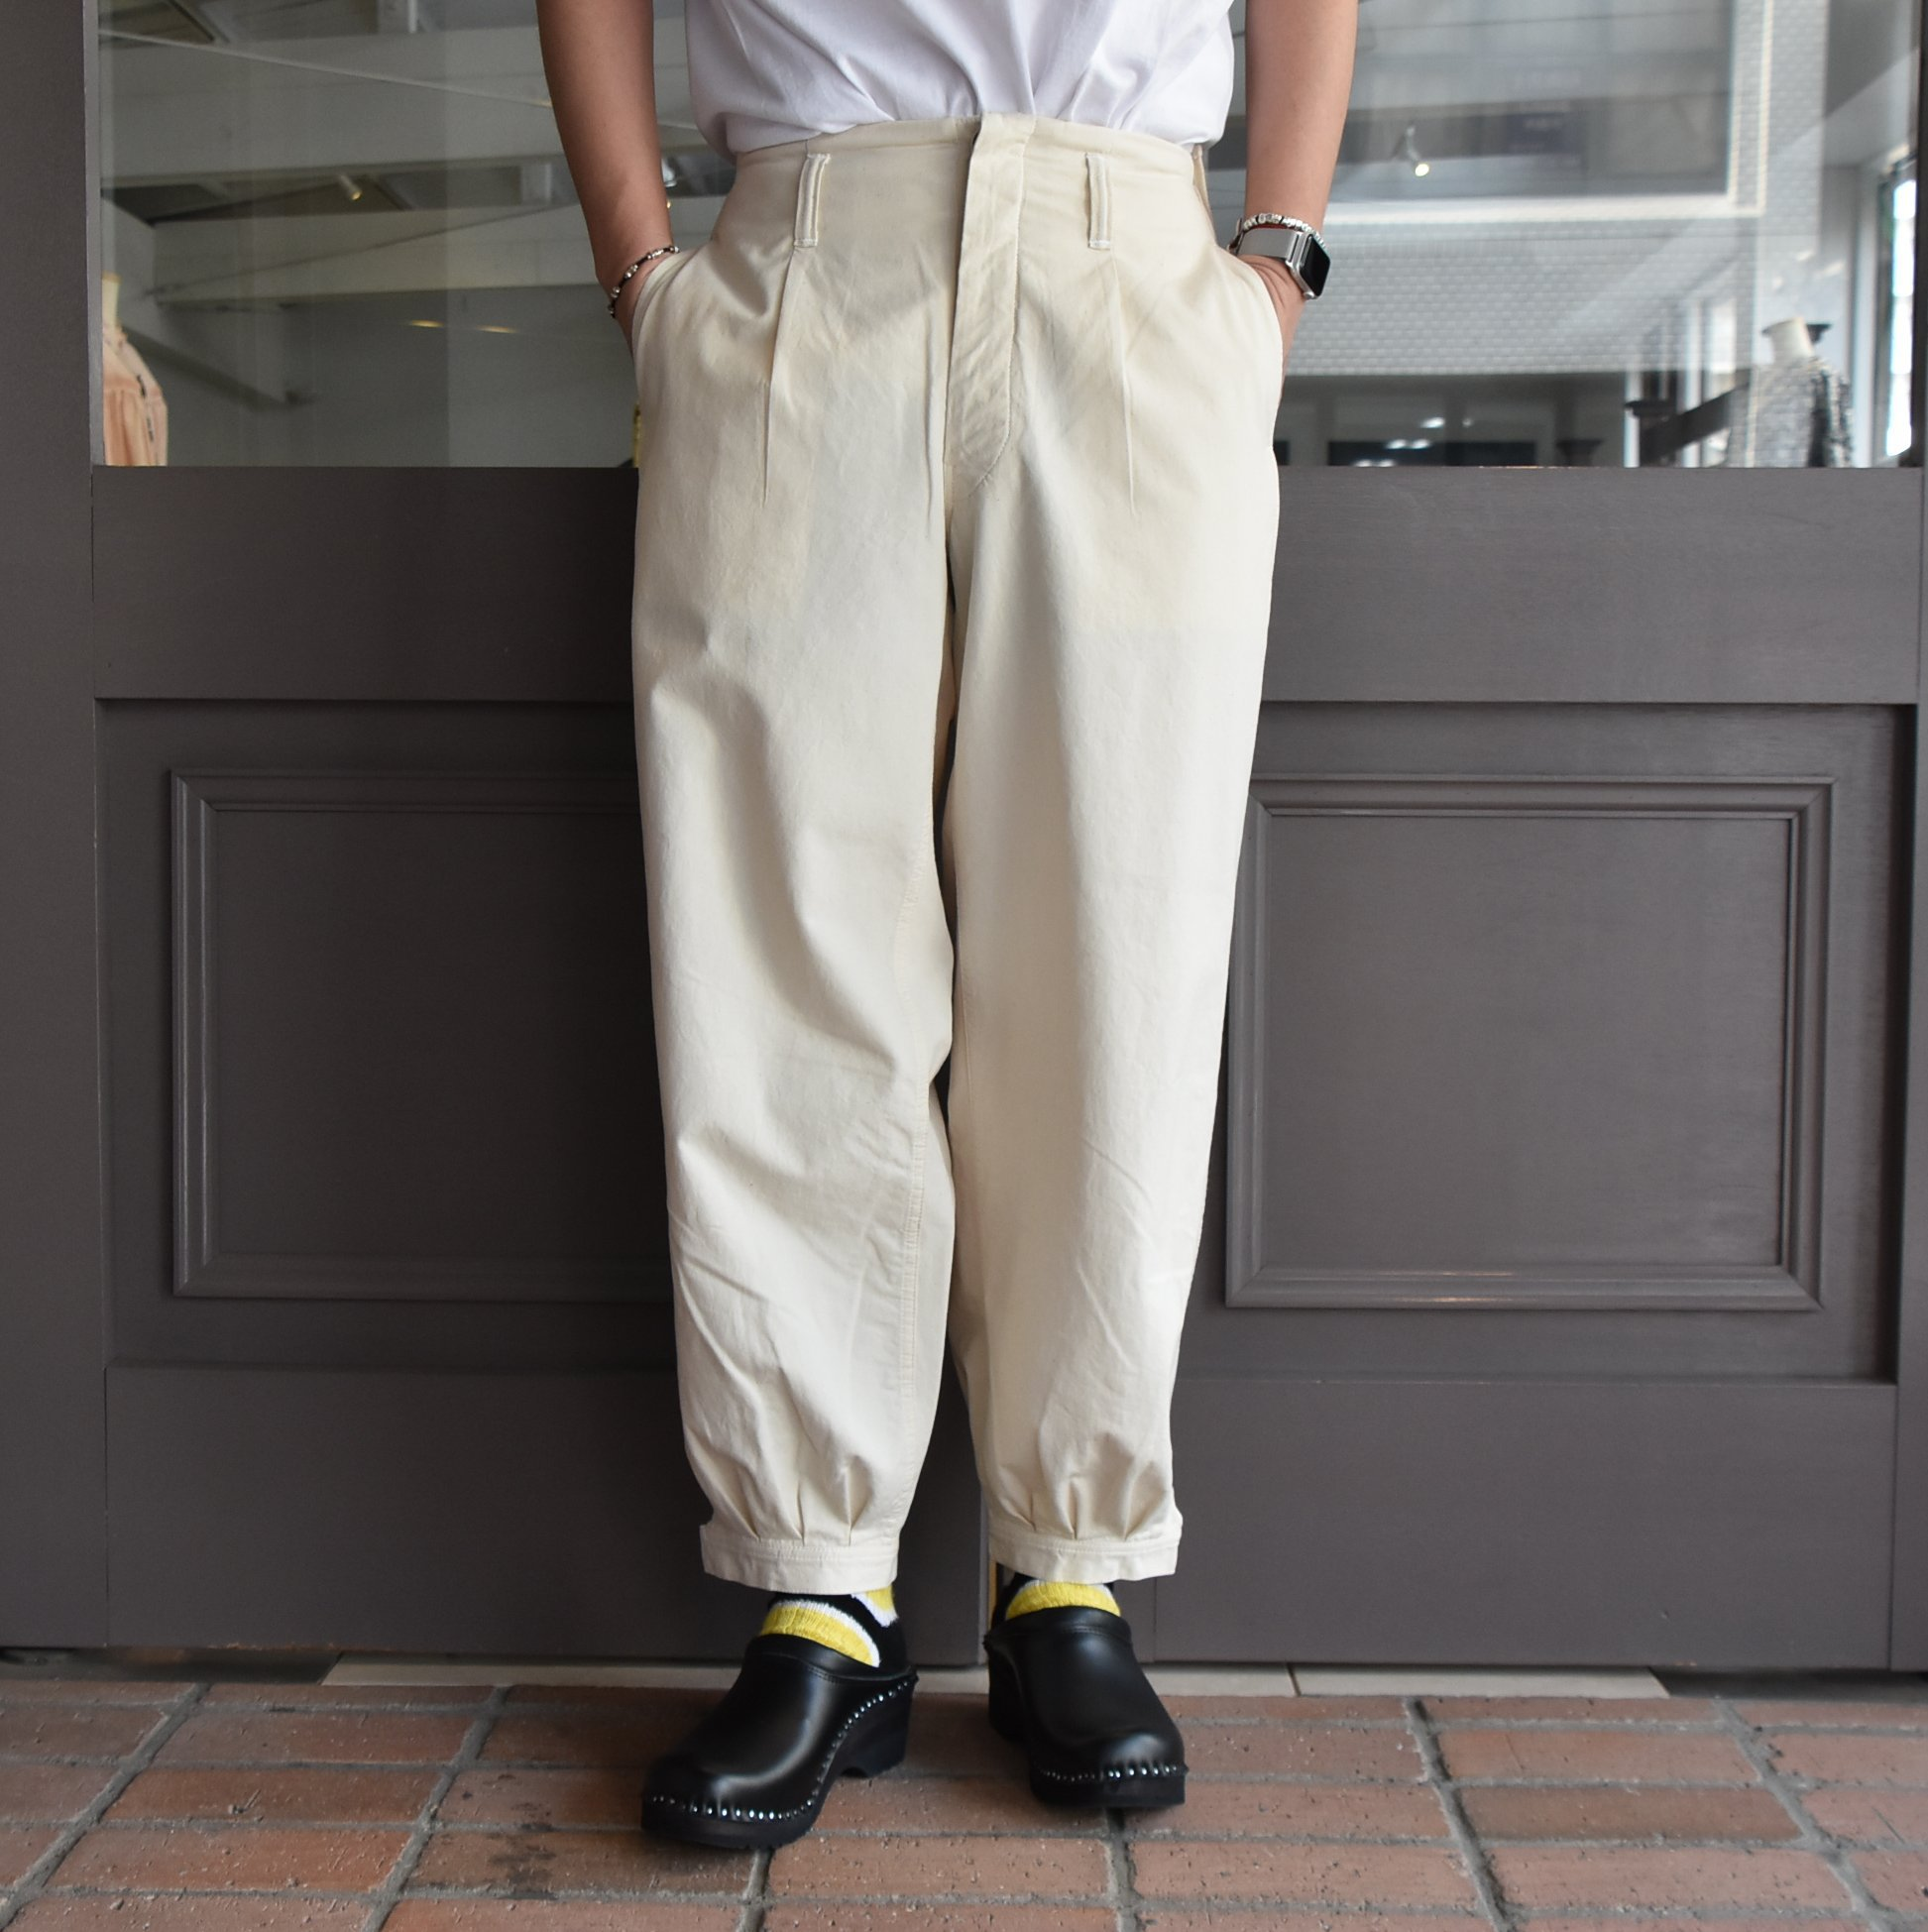 [2021]amachi.(アマチ) DetachablePocket Work Pants-Off White- #AY8-22(2)